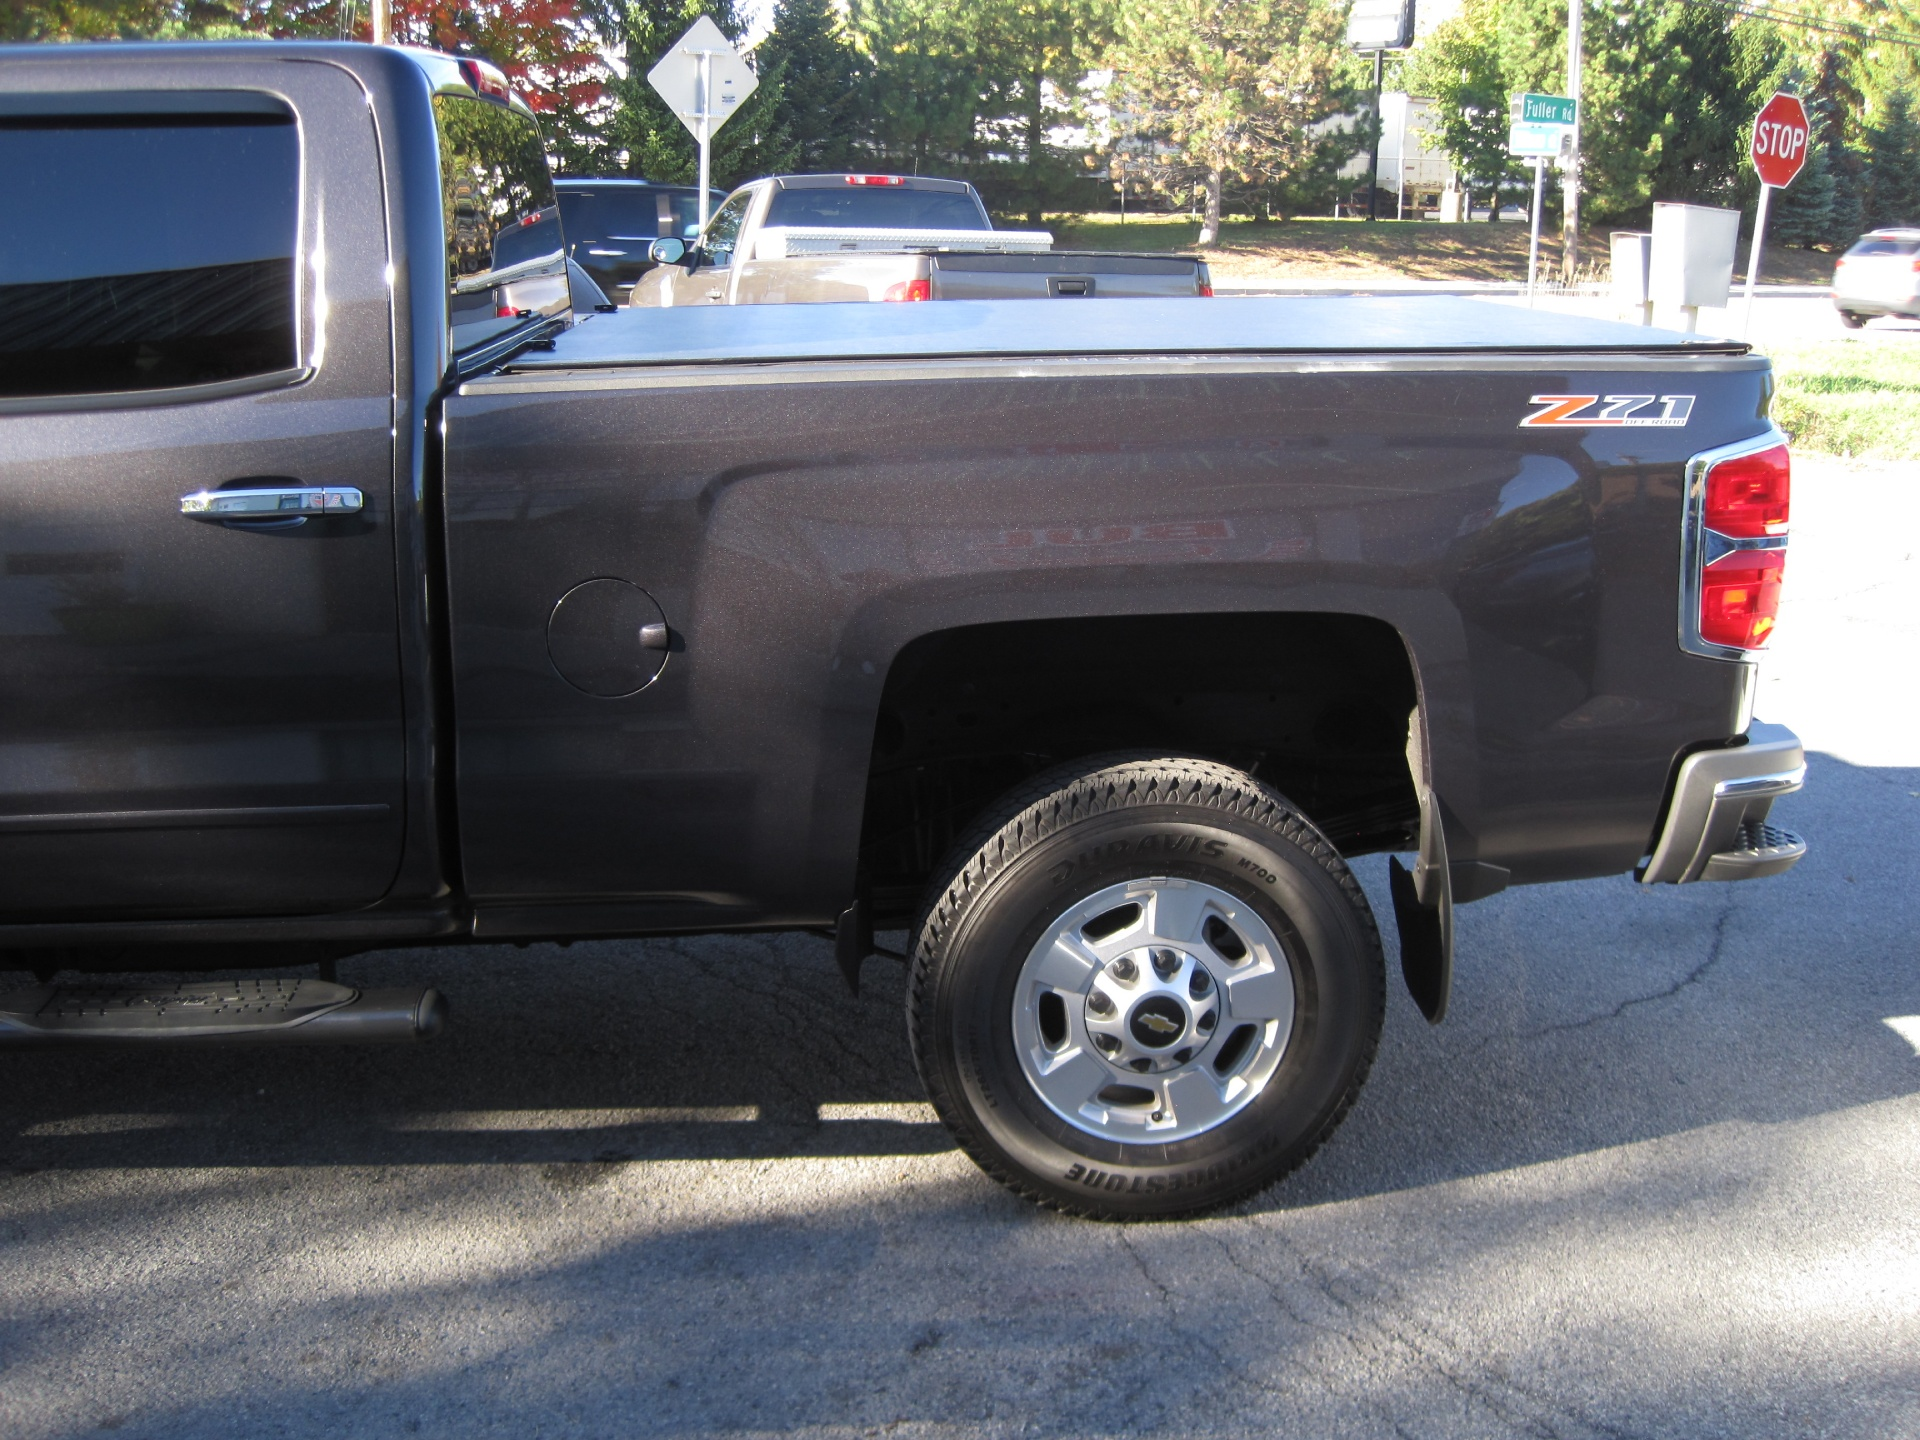 840_p44_l 2015 chevrolet silverado 2500hd lt 2500hd 4x4 extended cab,like  at readyjetset.co